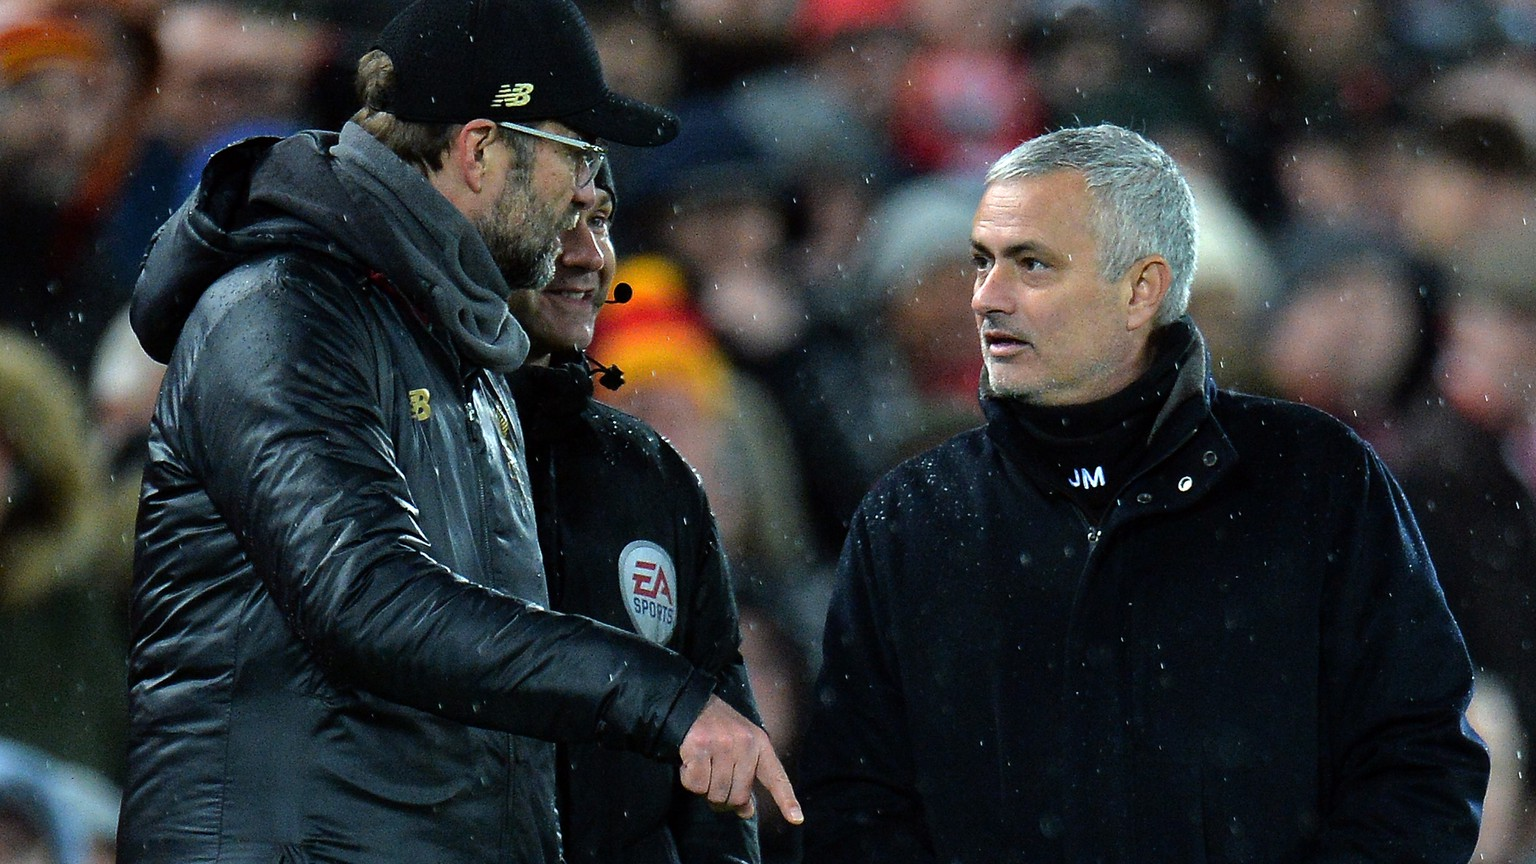 epa07235927 Manchester United manager Jose Mourinho (R) and Liverpool head coach Jurgen Klopp (L) during the English Premier League soccer match between Liverpool FC and Manchester United FC at Anfield in Liverpool, Britain, 16 December 2018.  EPA/PETER POWELL EDITORIAL USE ONLY. No use with unauthorized audio, video, data, fixture lists, club/league logos or 'live' services. Online in-match use limited to 120 images, no video emulation. No use in betting, games or single club/league/player publications.